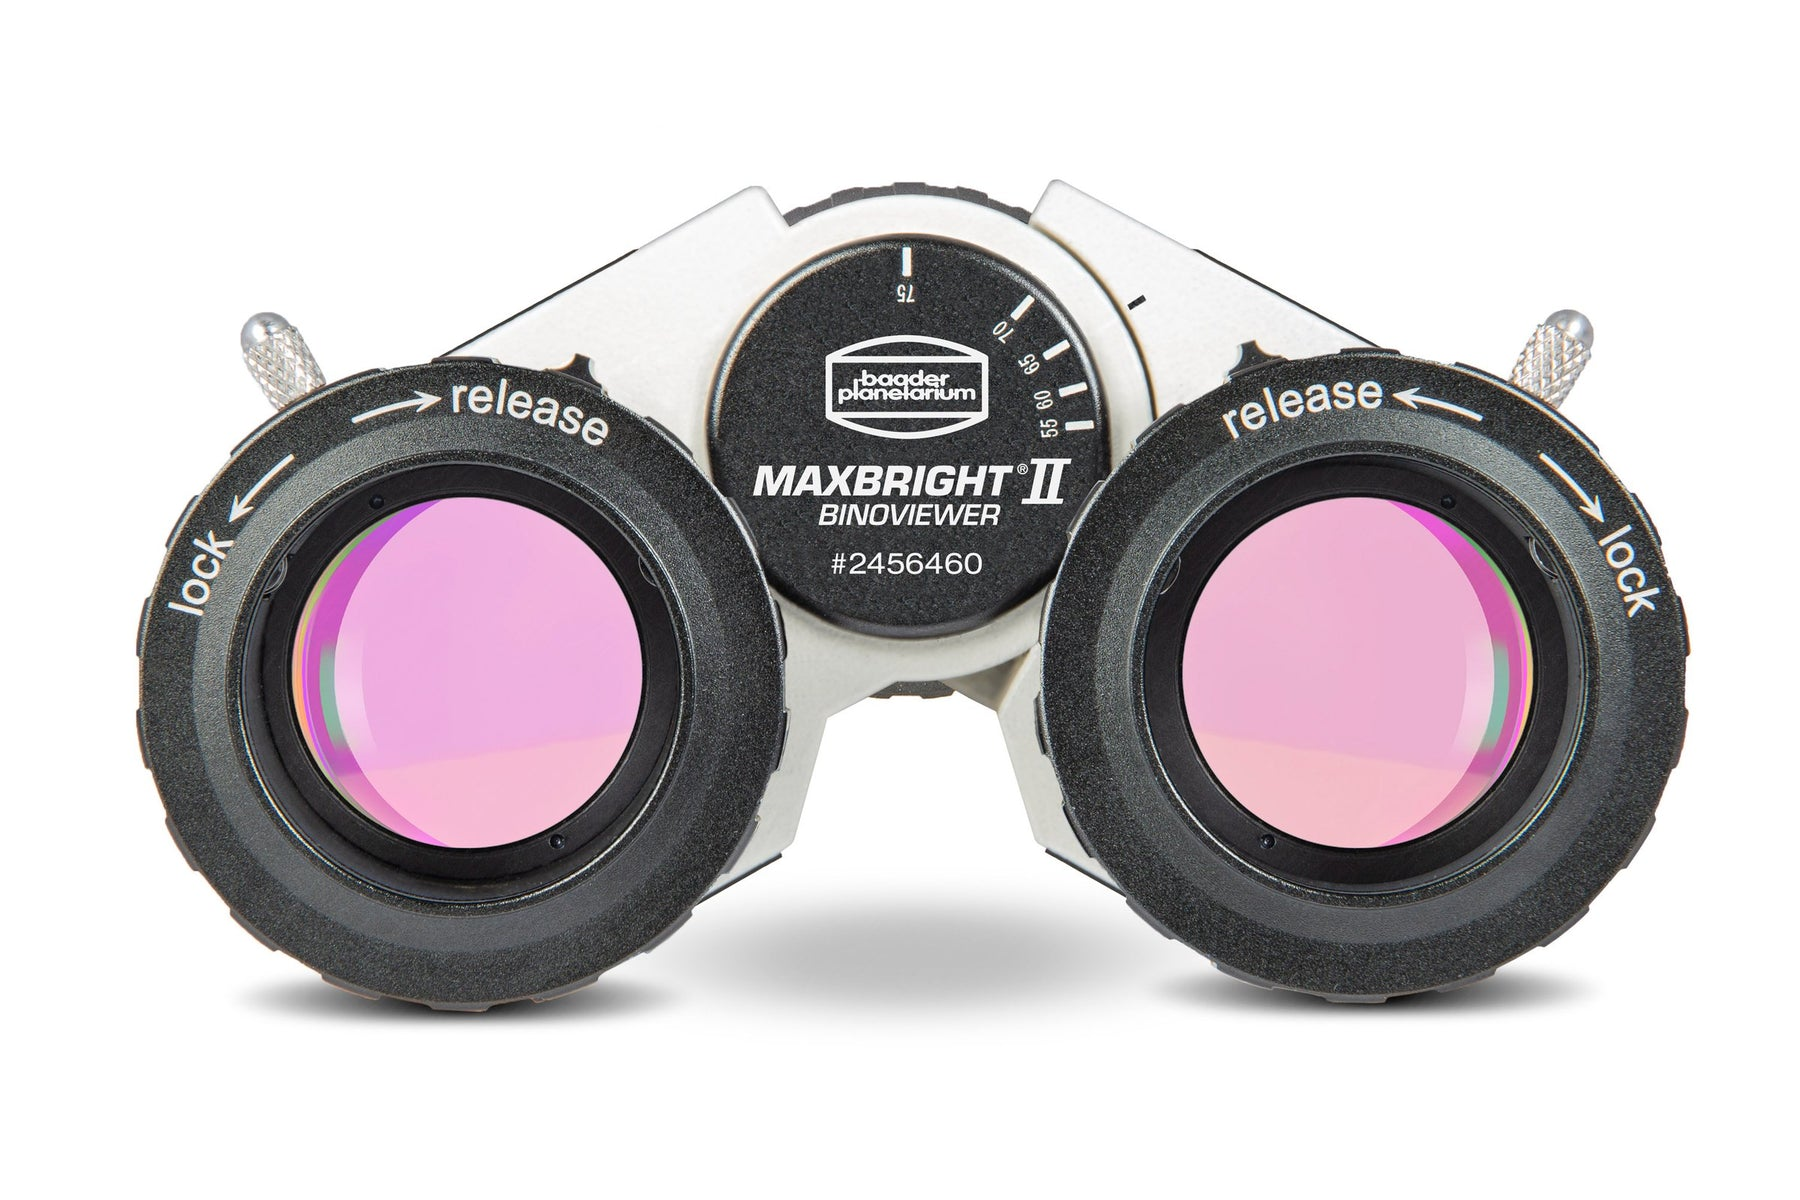 A Review of the new Baader Maxbright Binoviewers